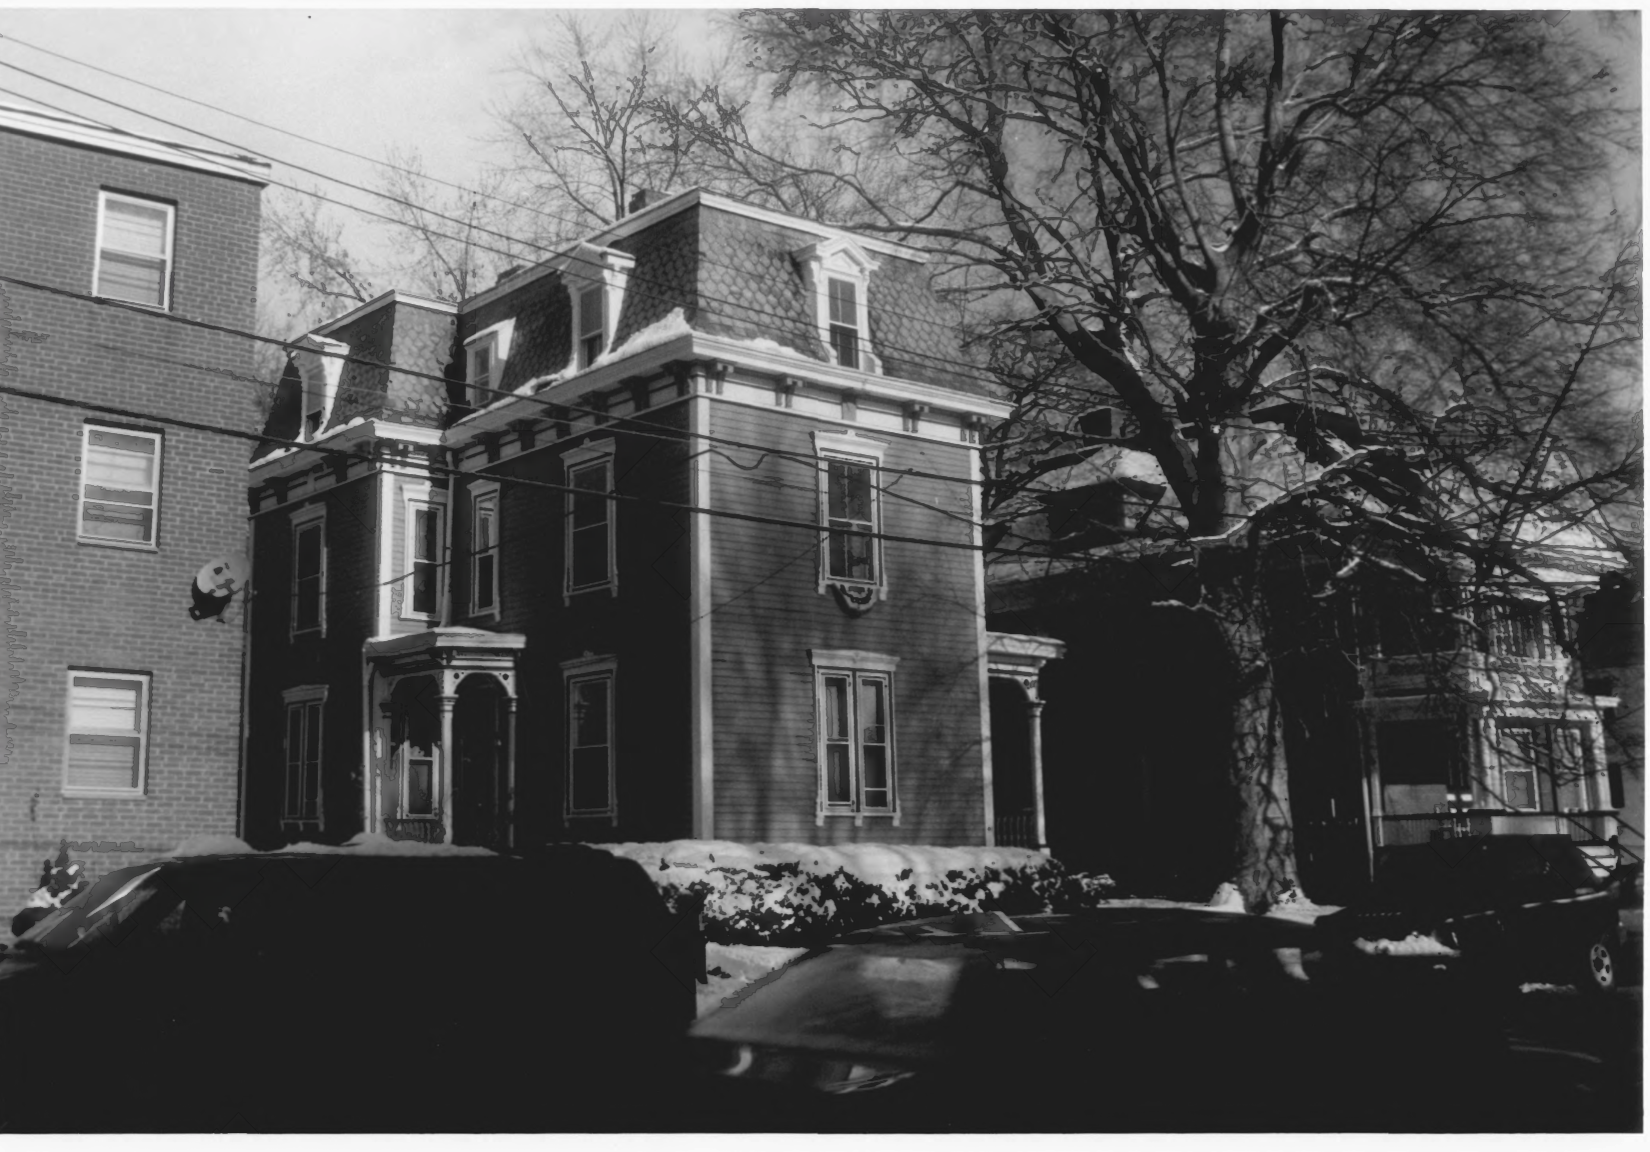 Allen Place - Lincoln Street Historic District Photo Record, Maintained by the NPS, Photo 8